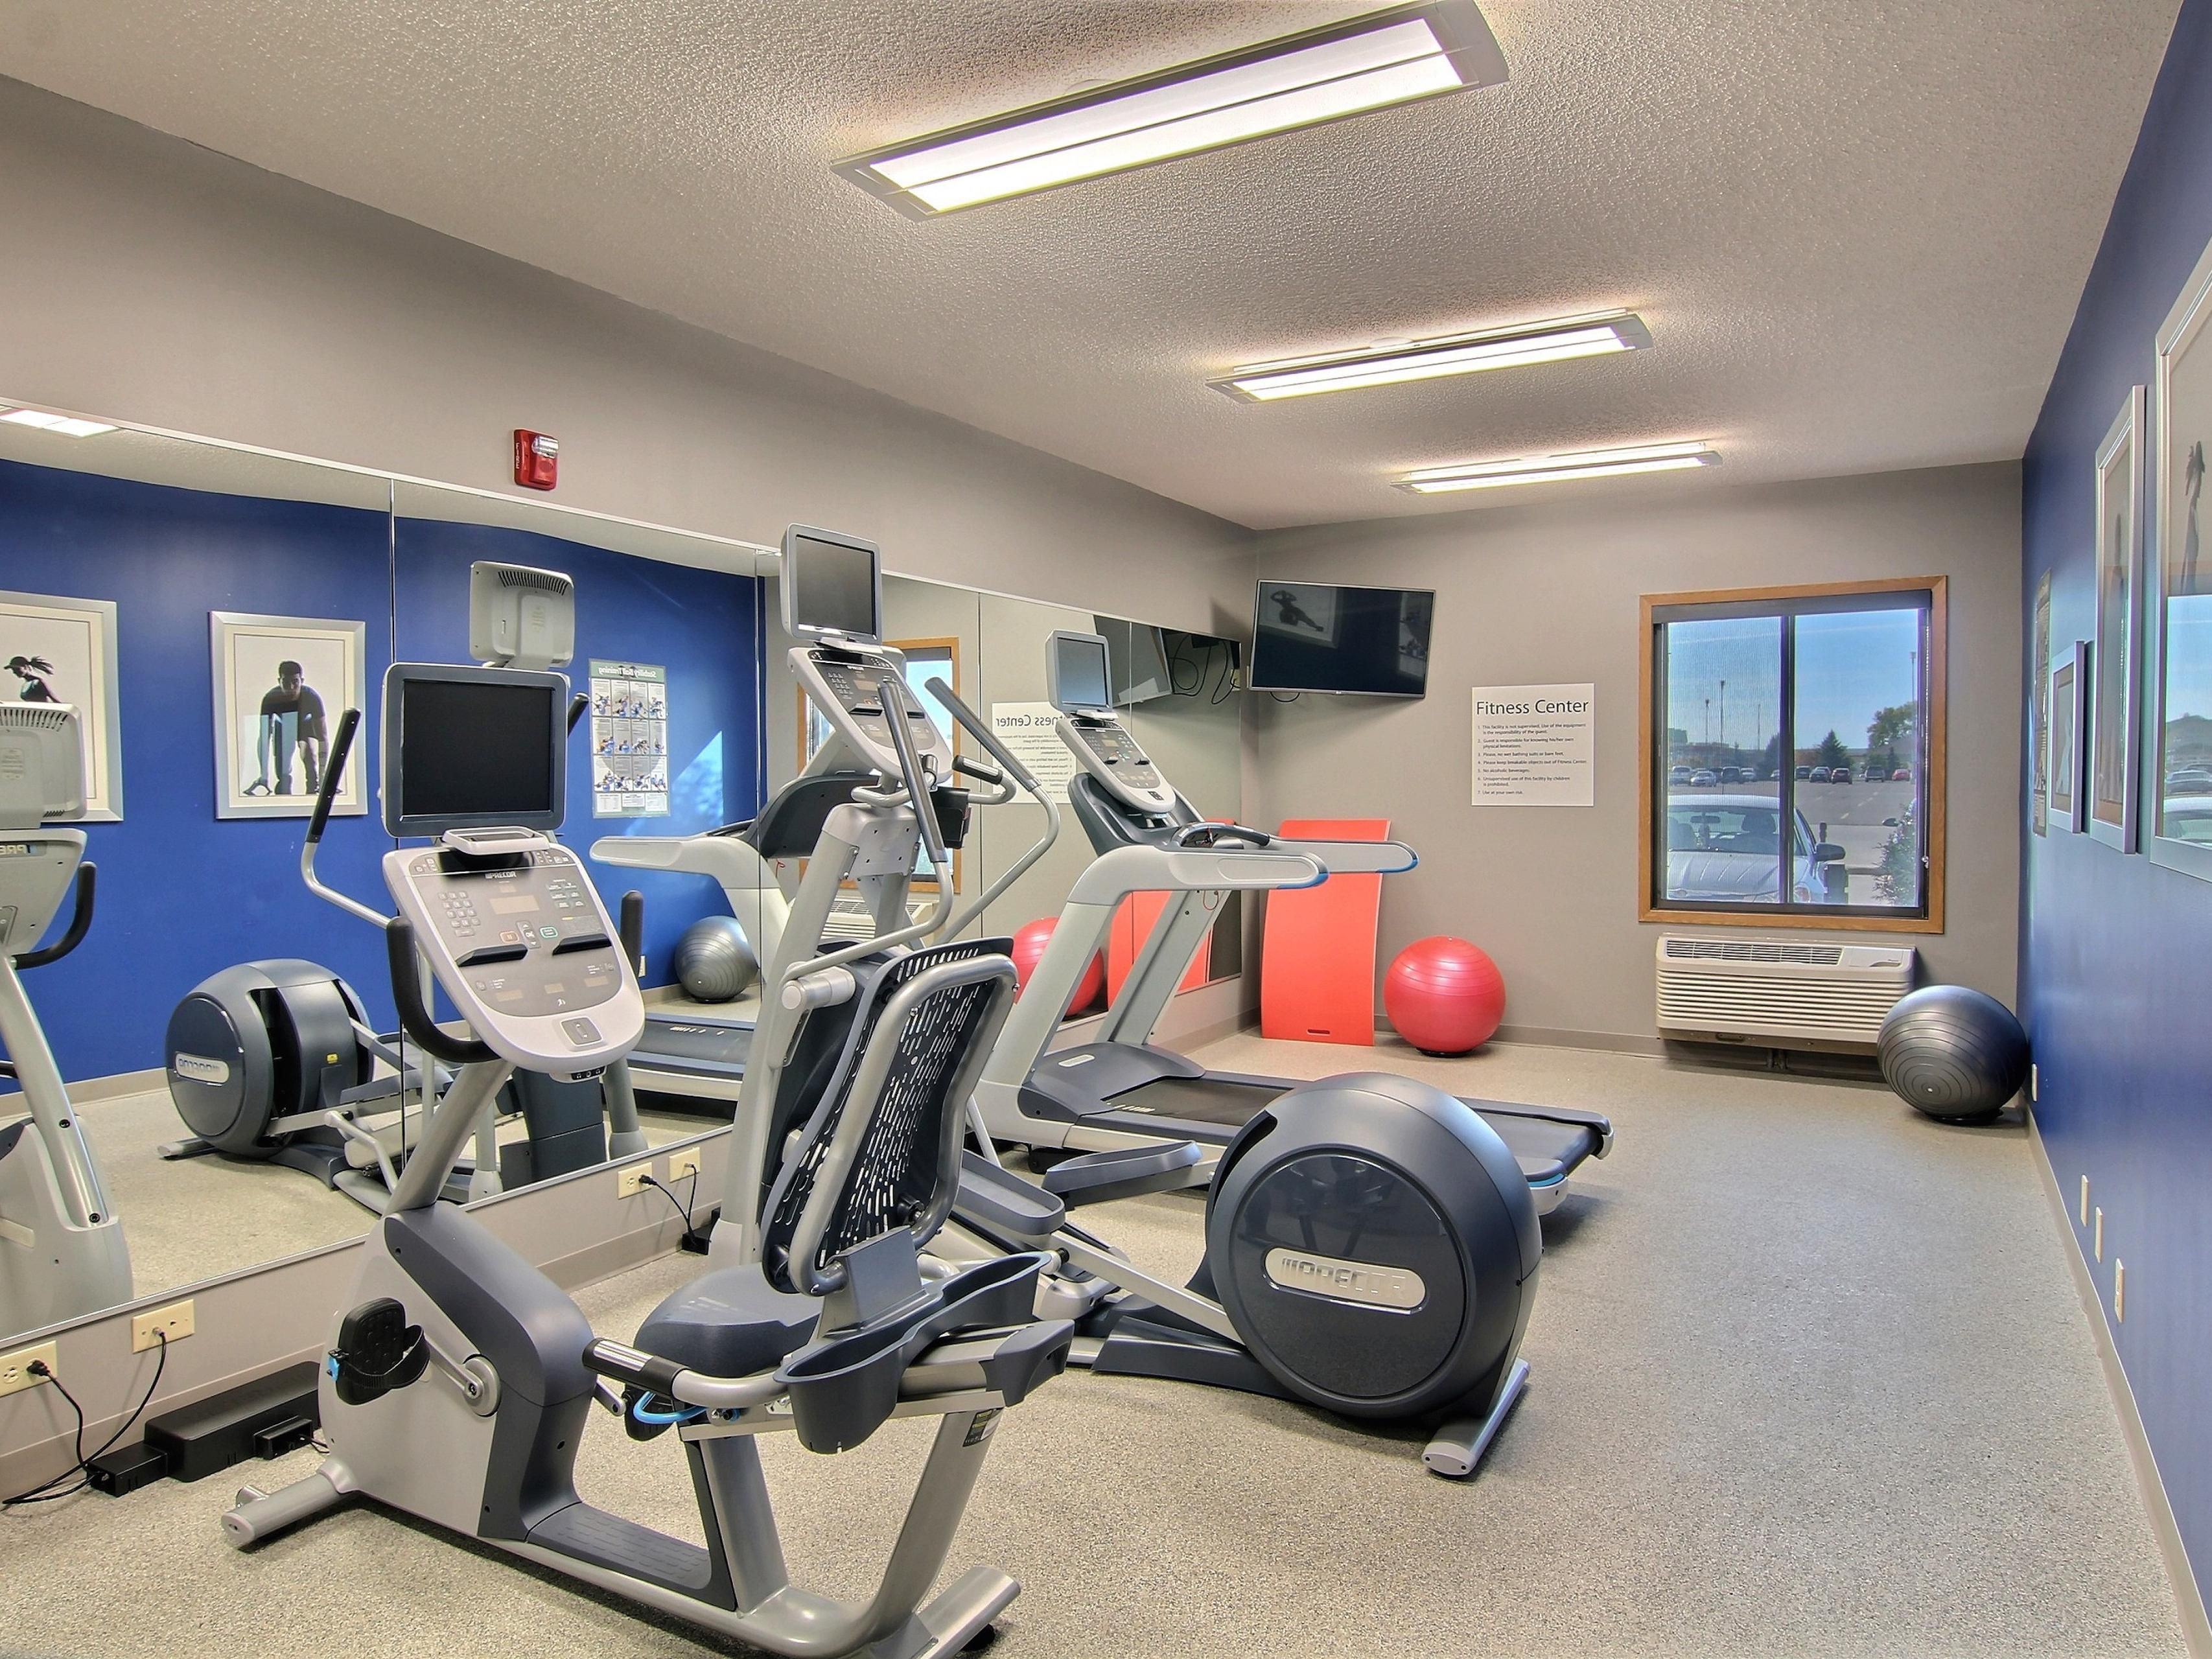 Stay in shape in our brand new fitness center with individual TVs